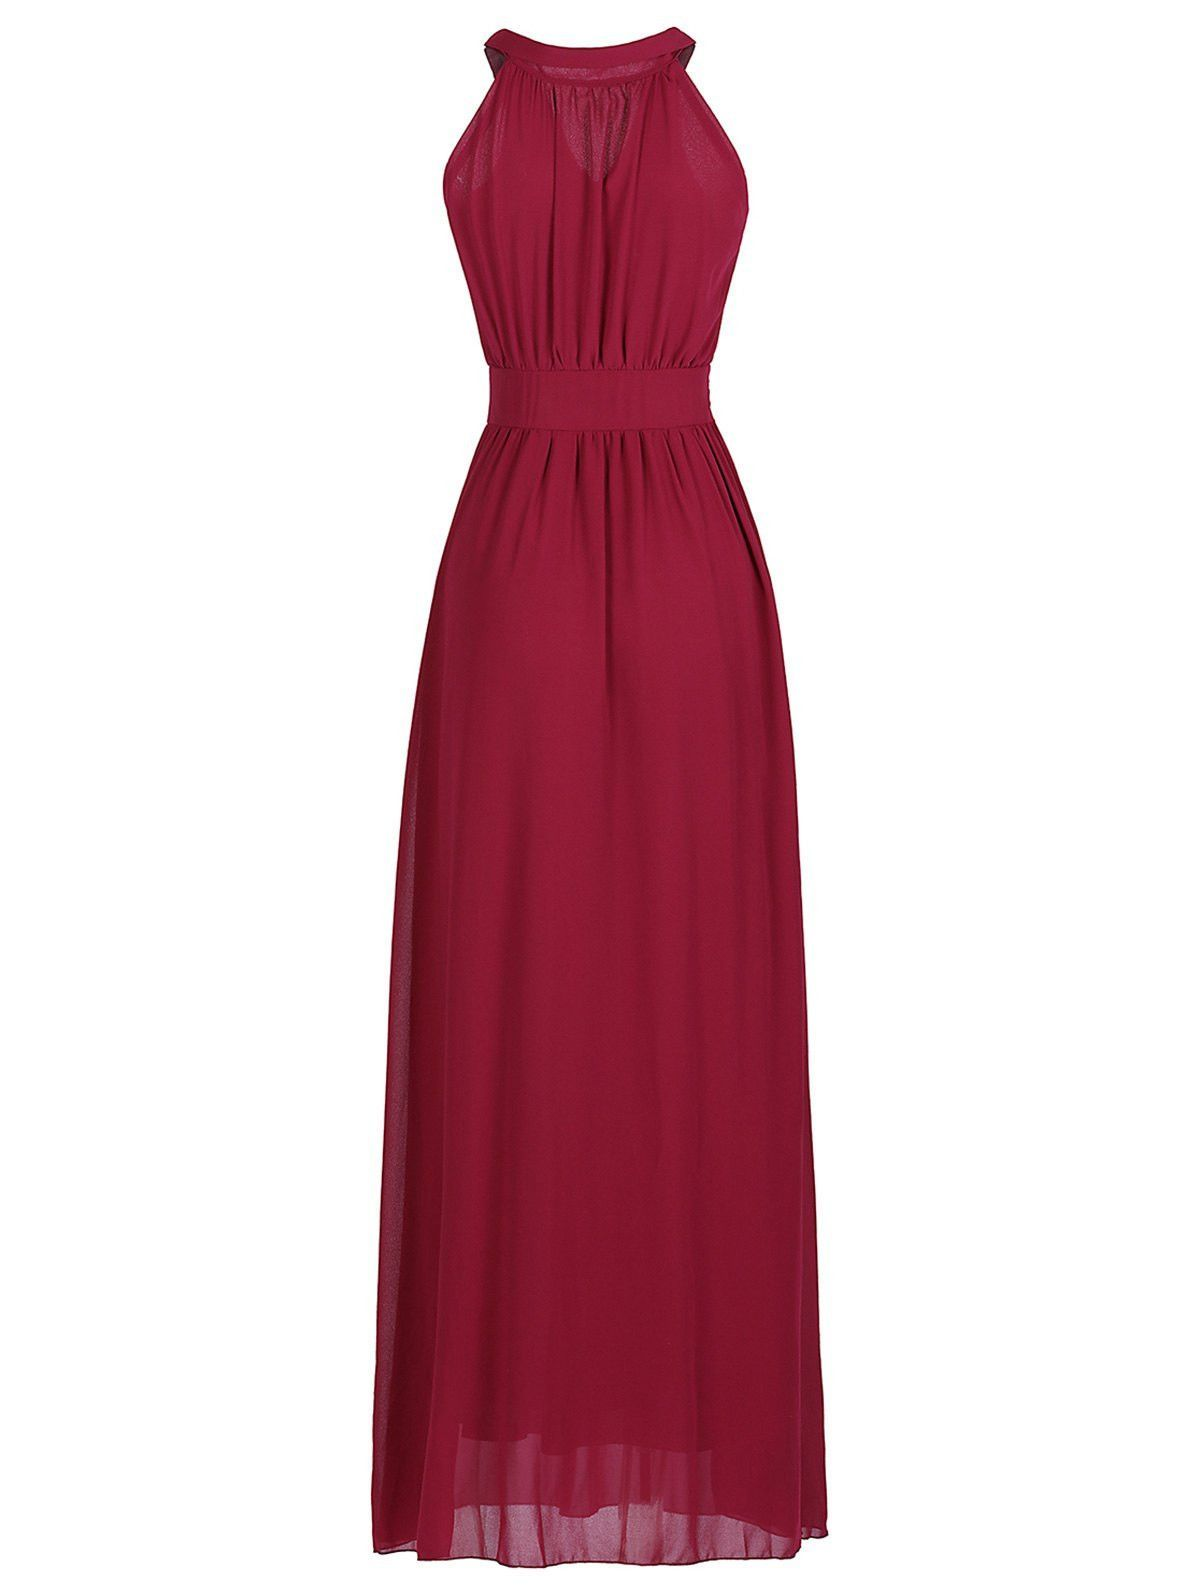 Round neck laceup solid color sleeveless chiffon dress rounding